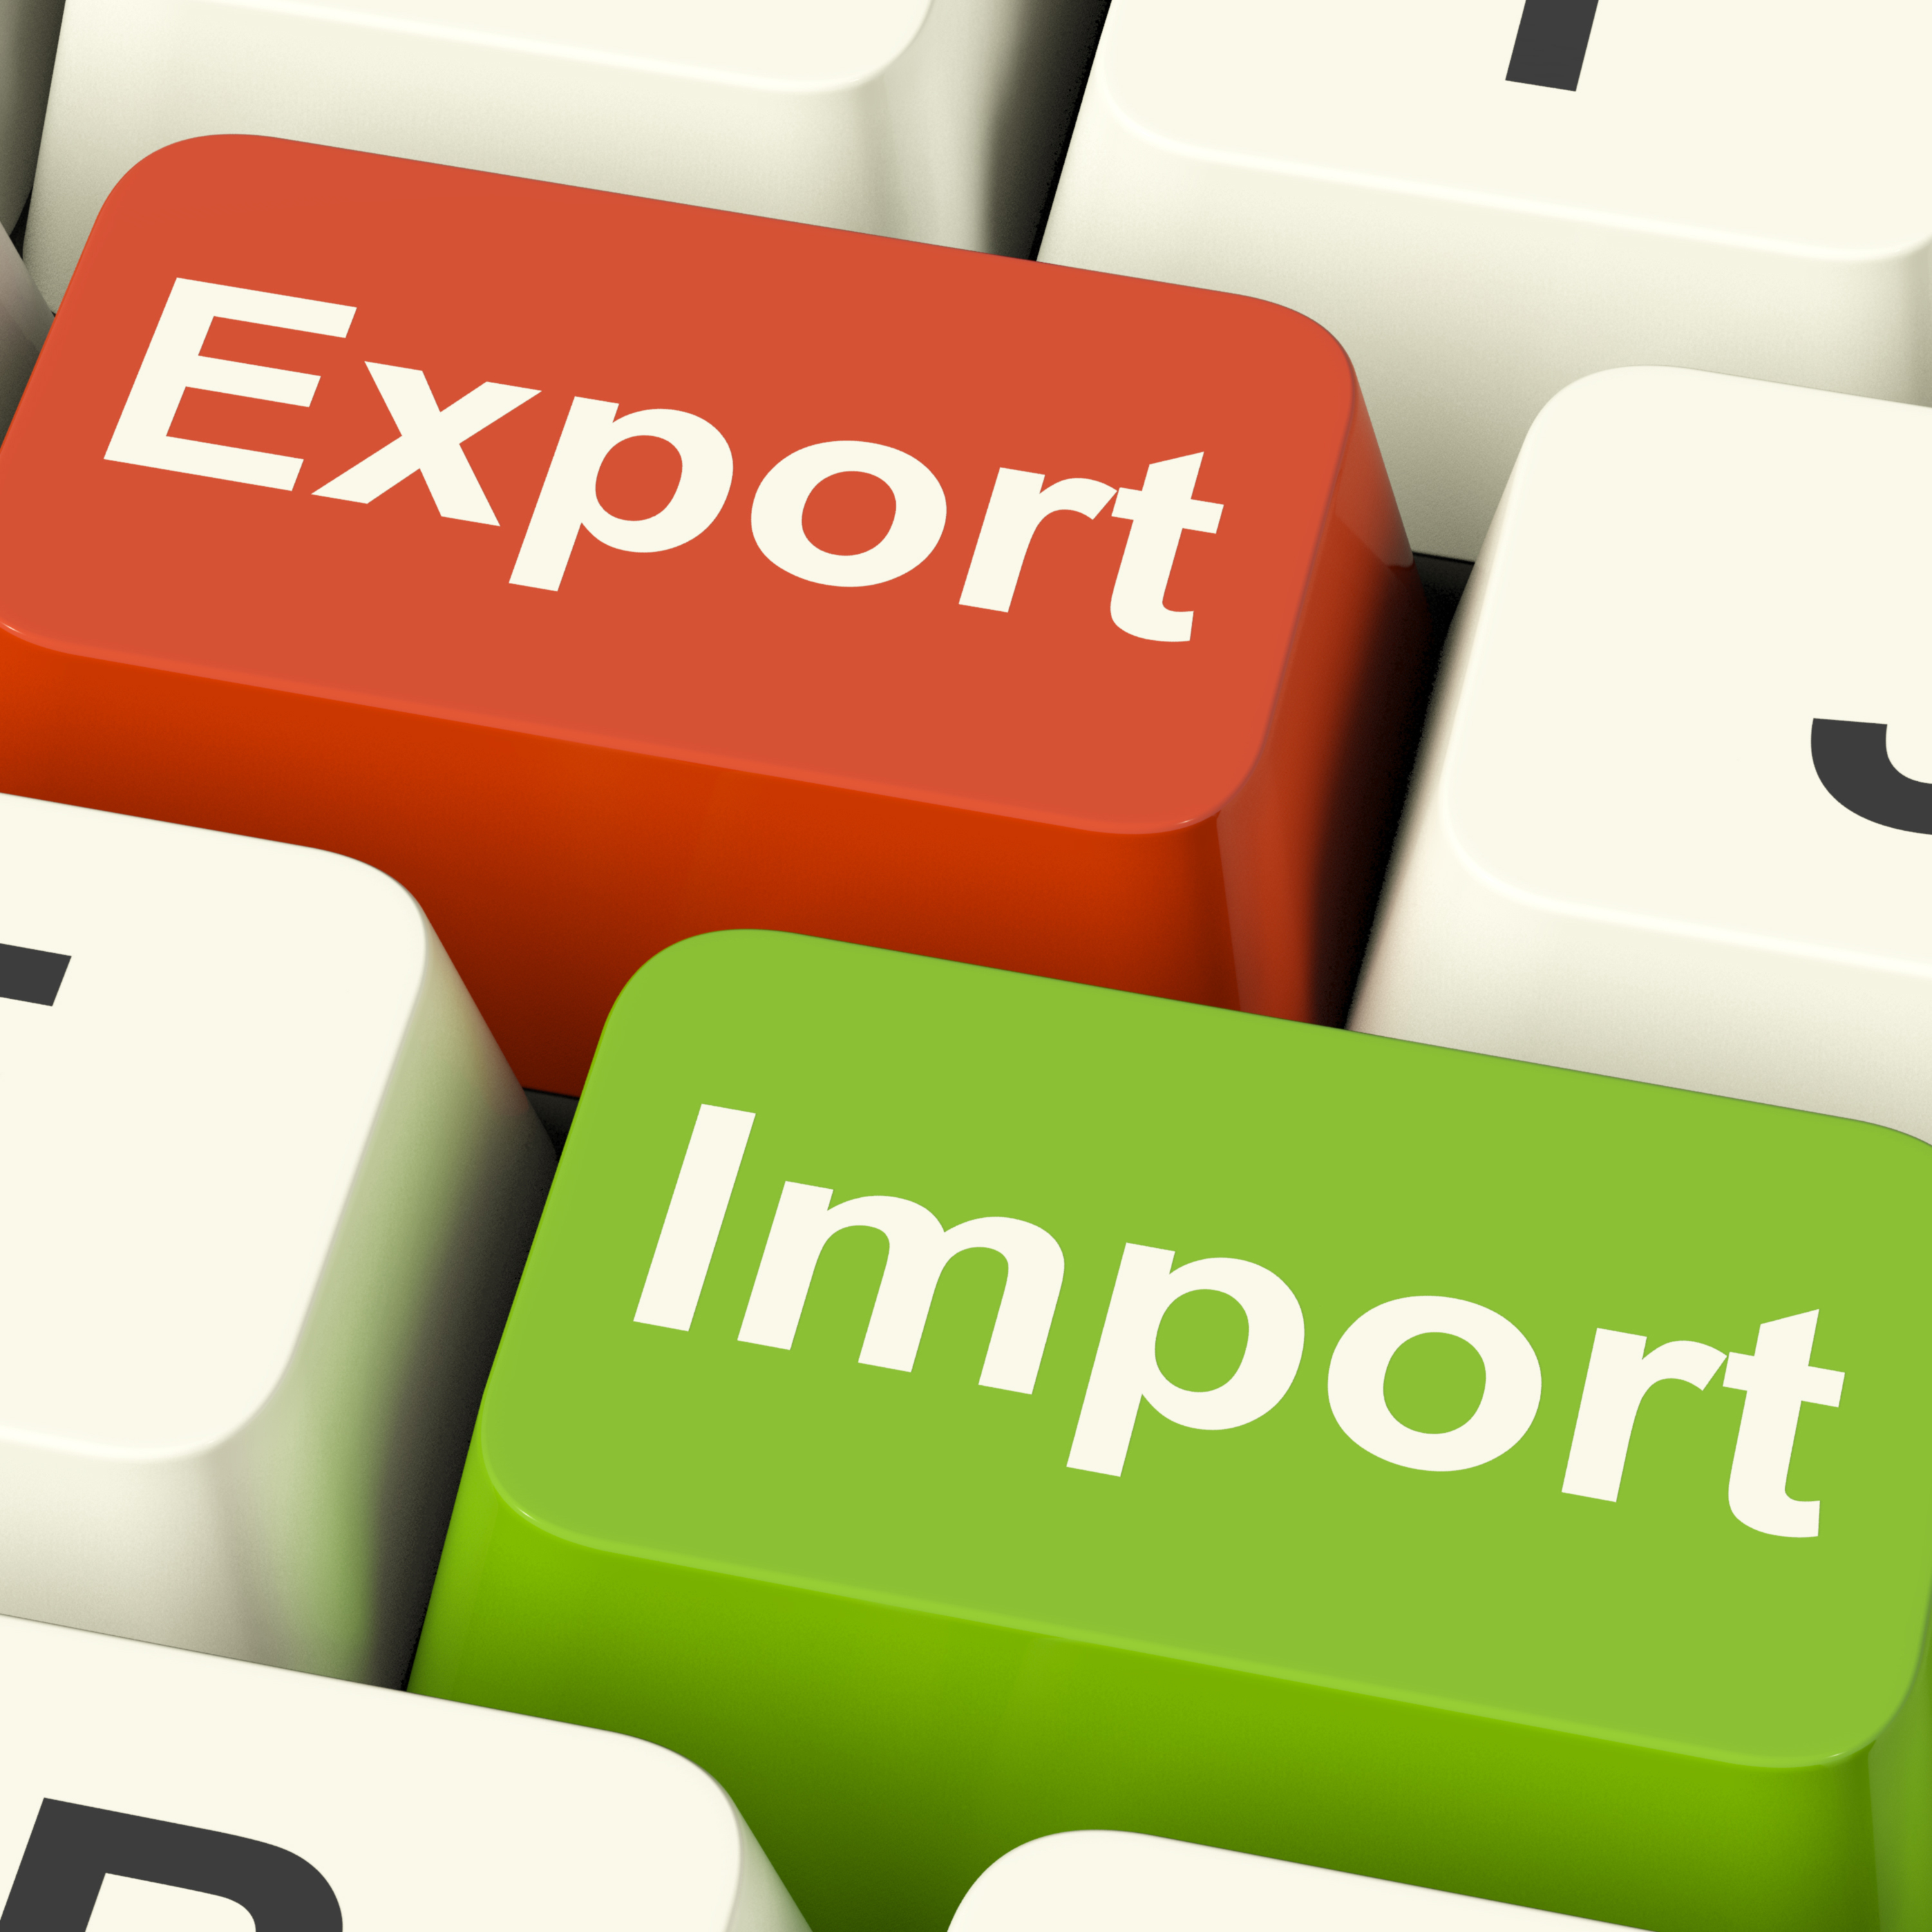 Exporting and Importing Text Letter ID's